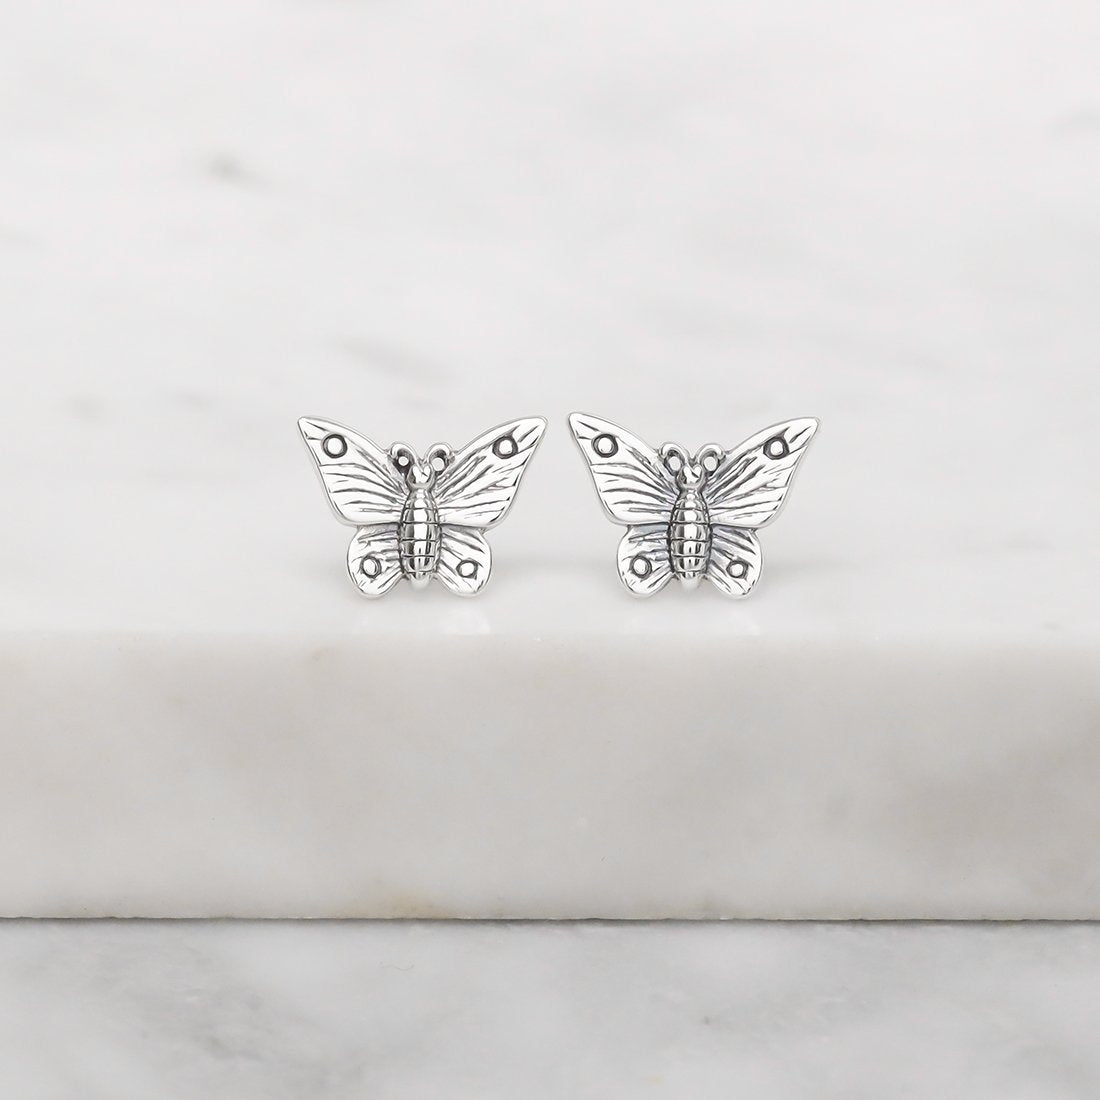 Midsummer Star Earrings Butterfly Lovers Studs